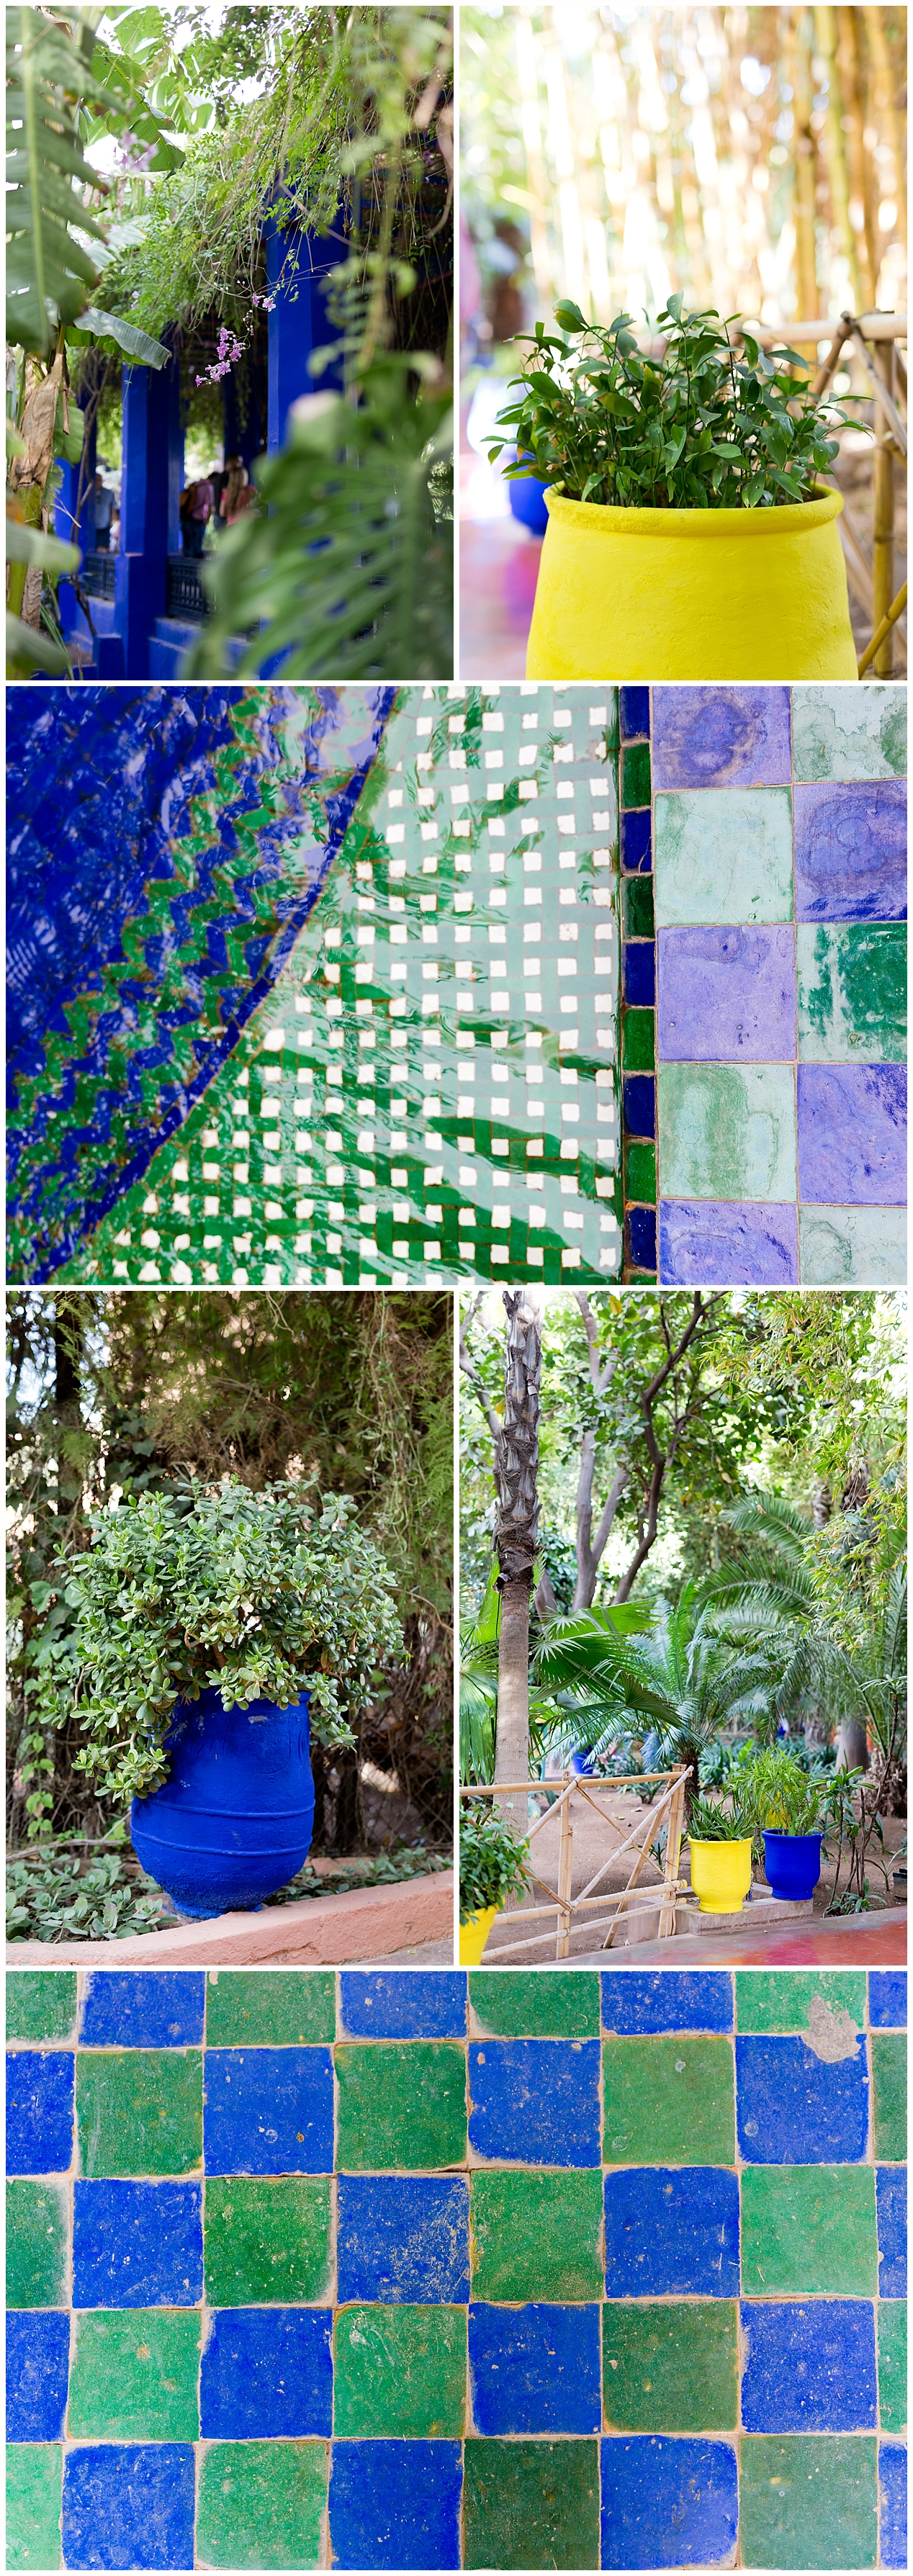 mosaic tile and bold blue and yellow flower pots at Jardin Majorelle